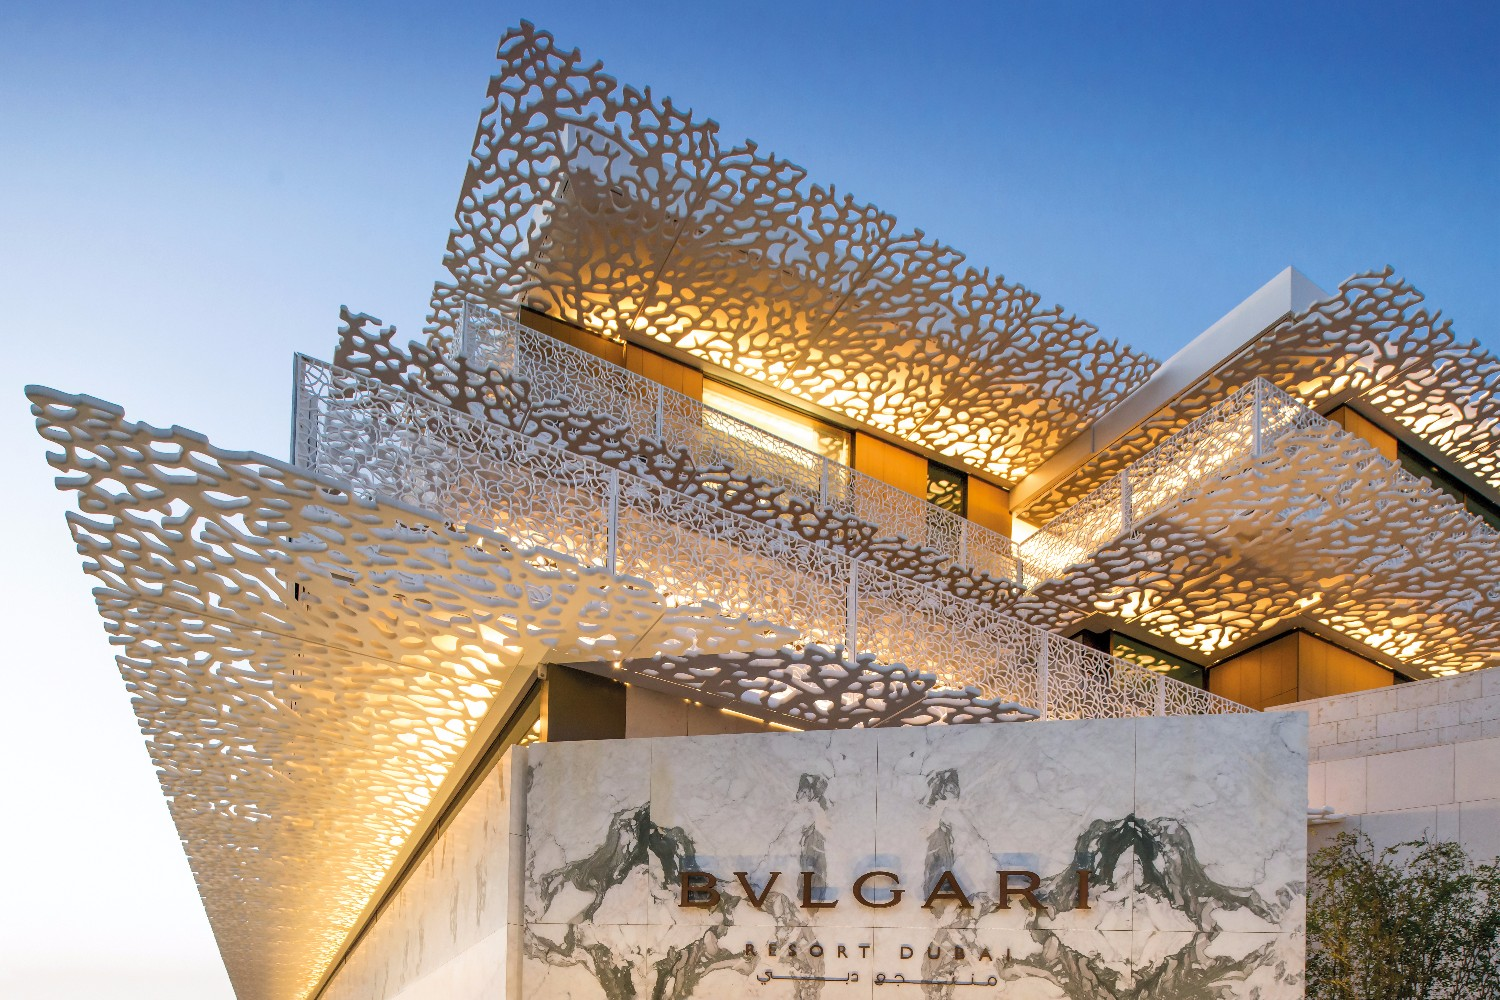 The luxurious bulgari resort in dubai opens as the city 39 s for Most expensive place to stay in dubai